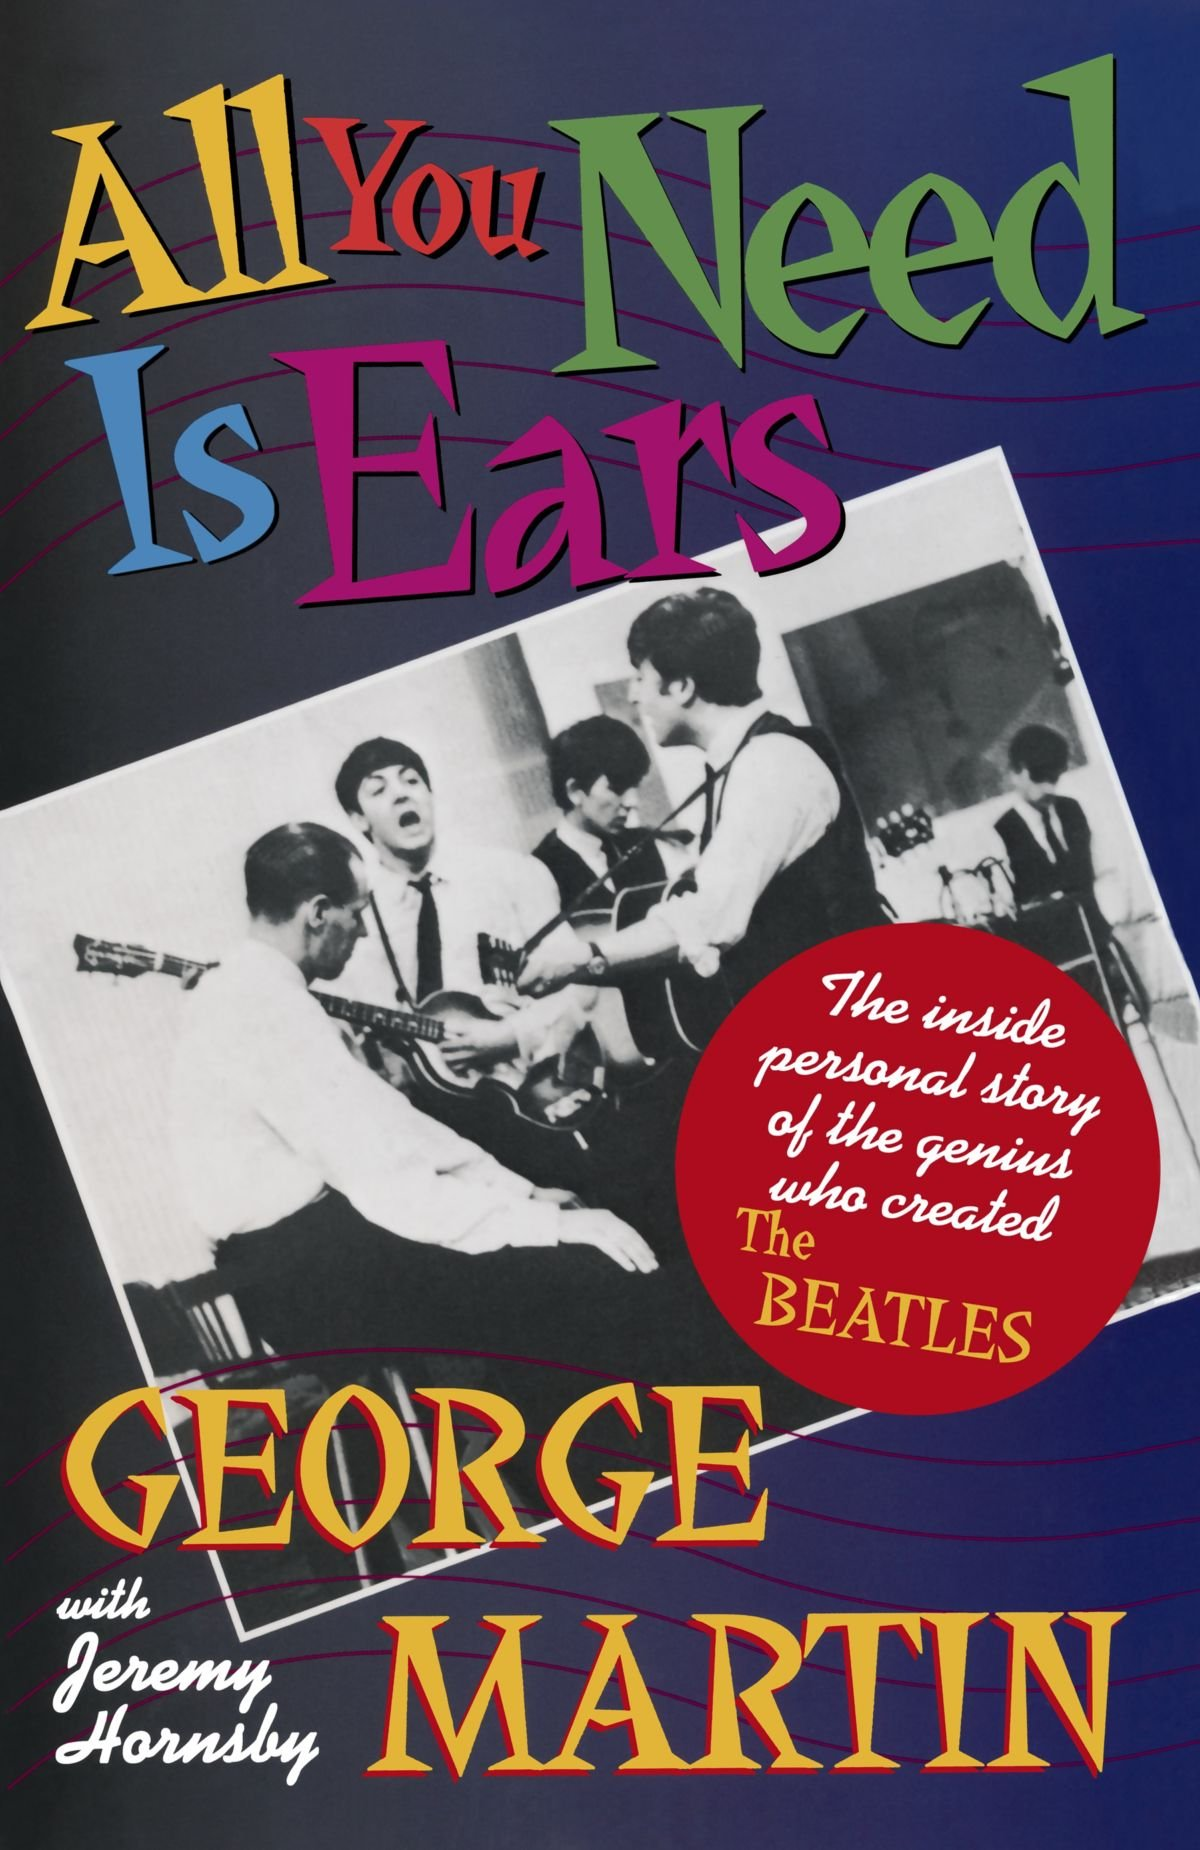 amazon all you need is ears george martin jeremy hornsby beatles